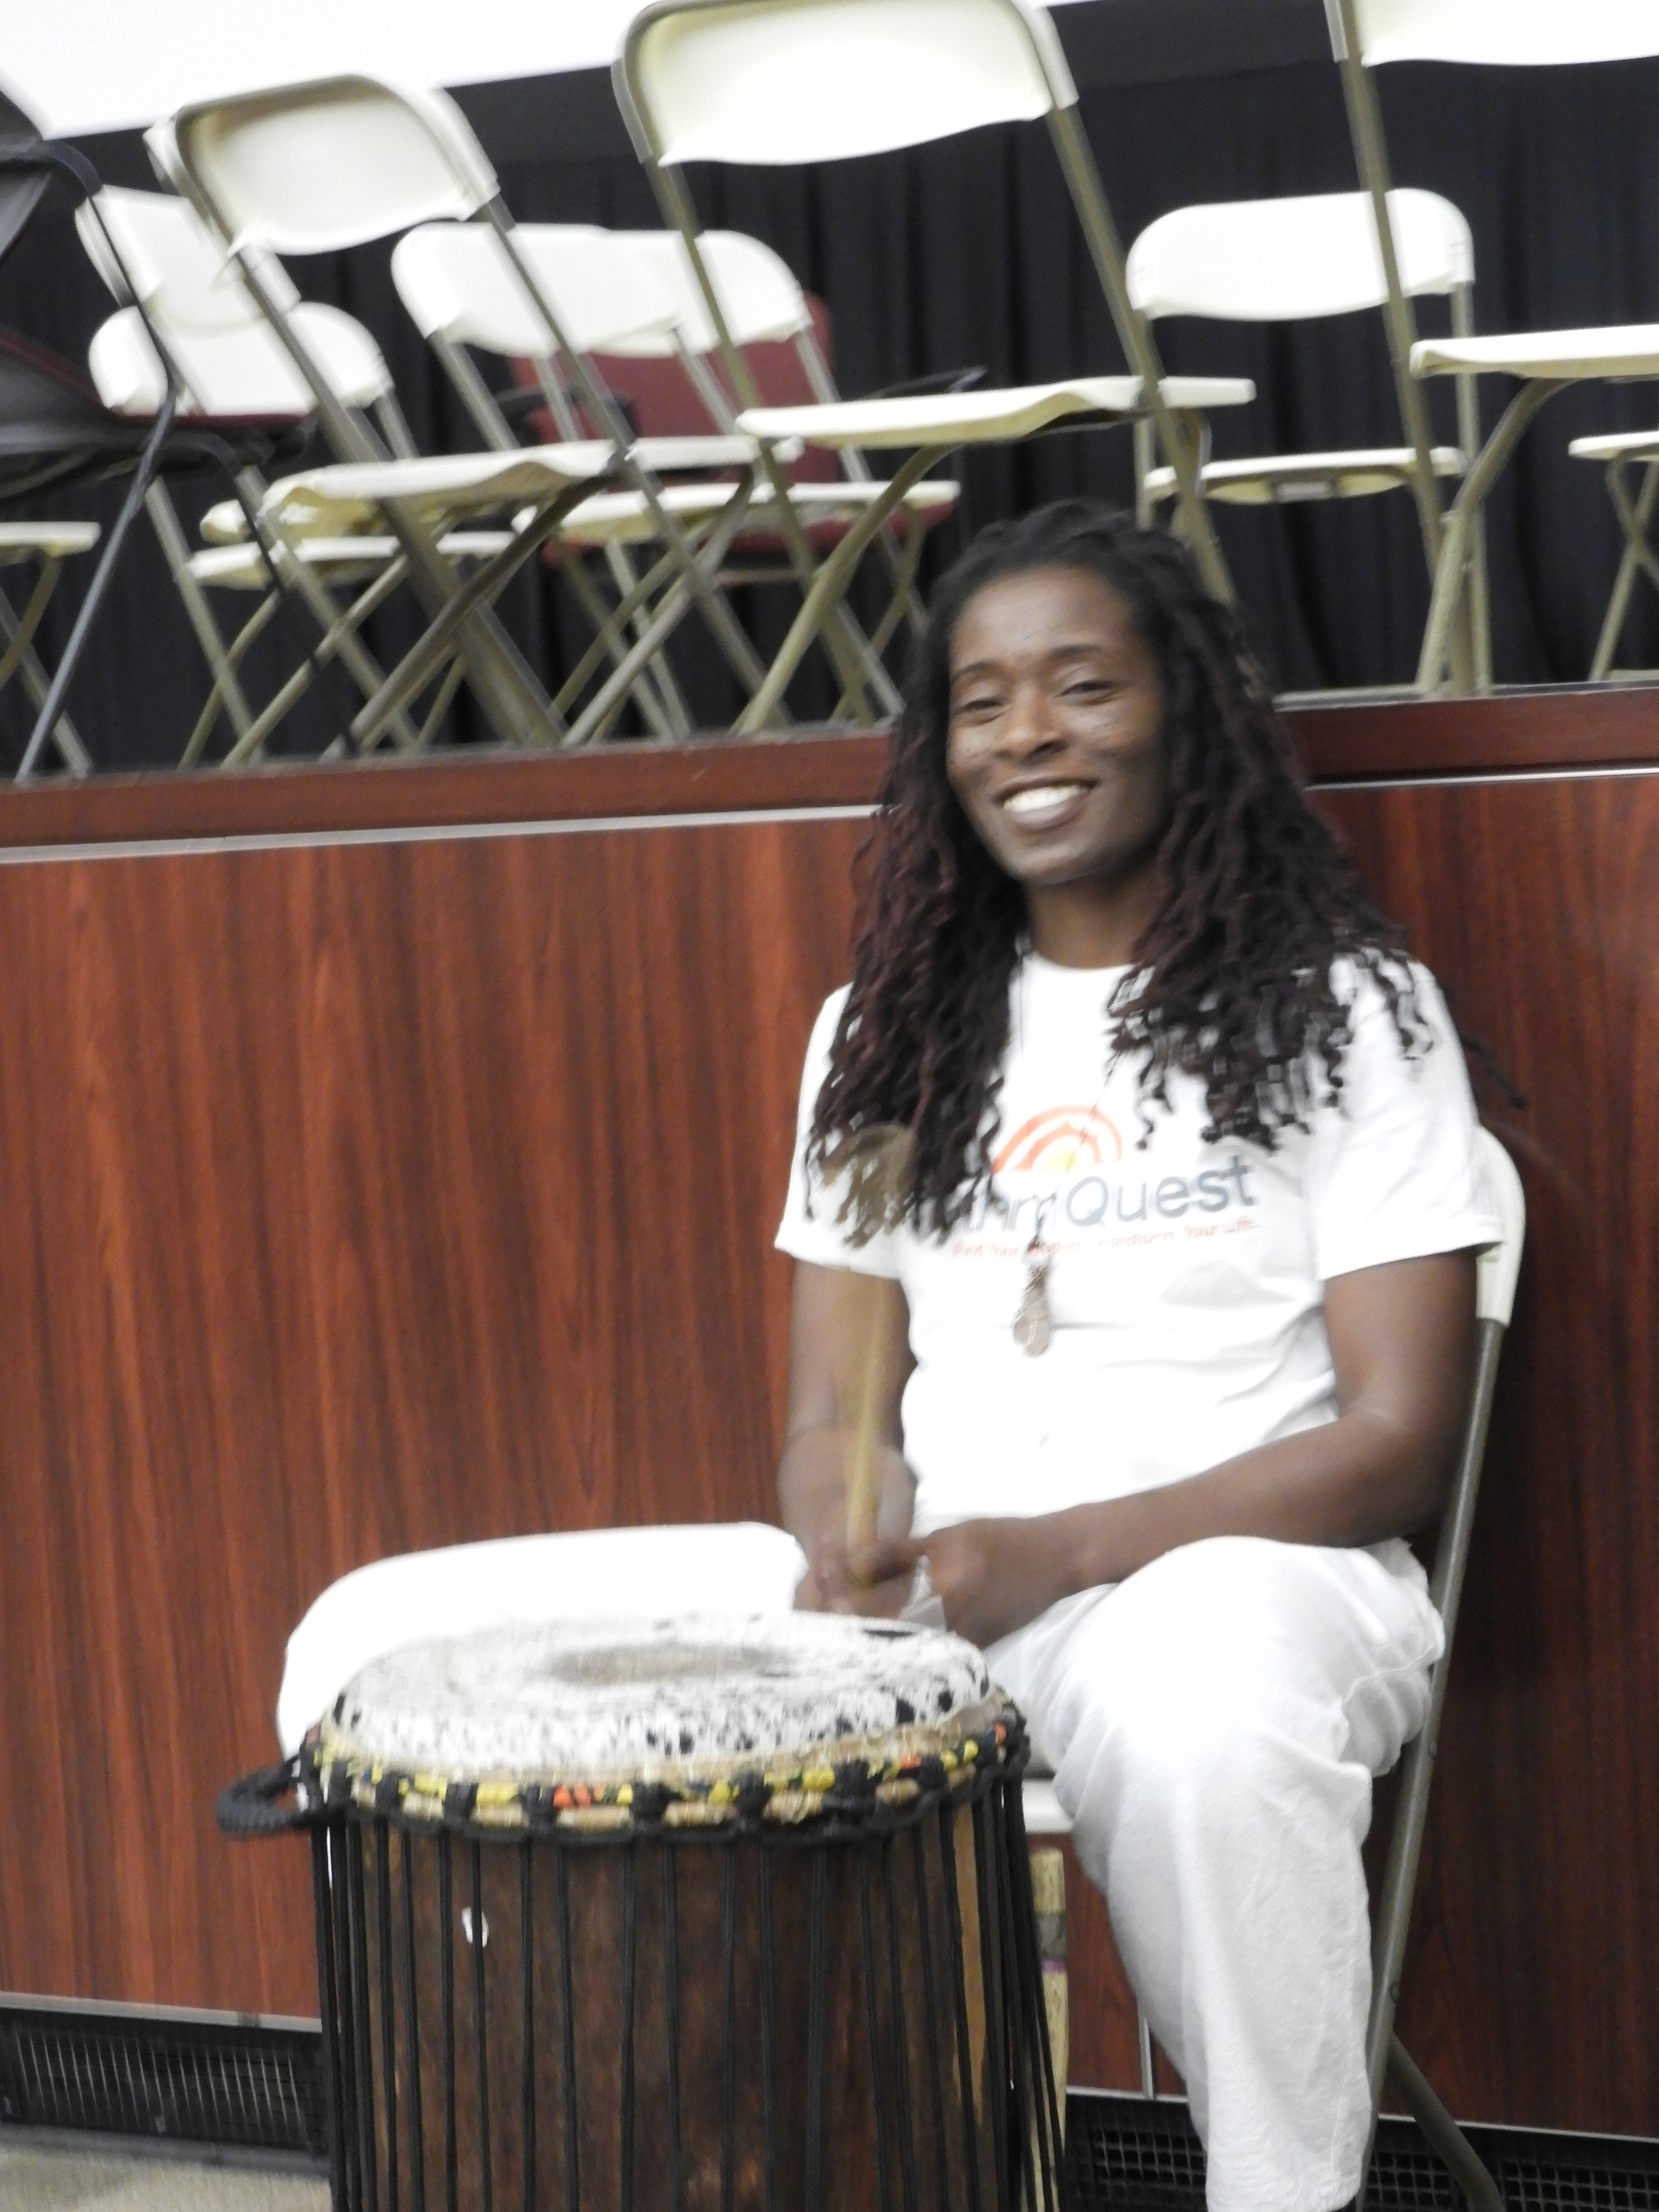 More drumming to celebrate at the end of the conference